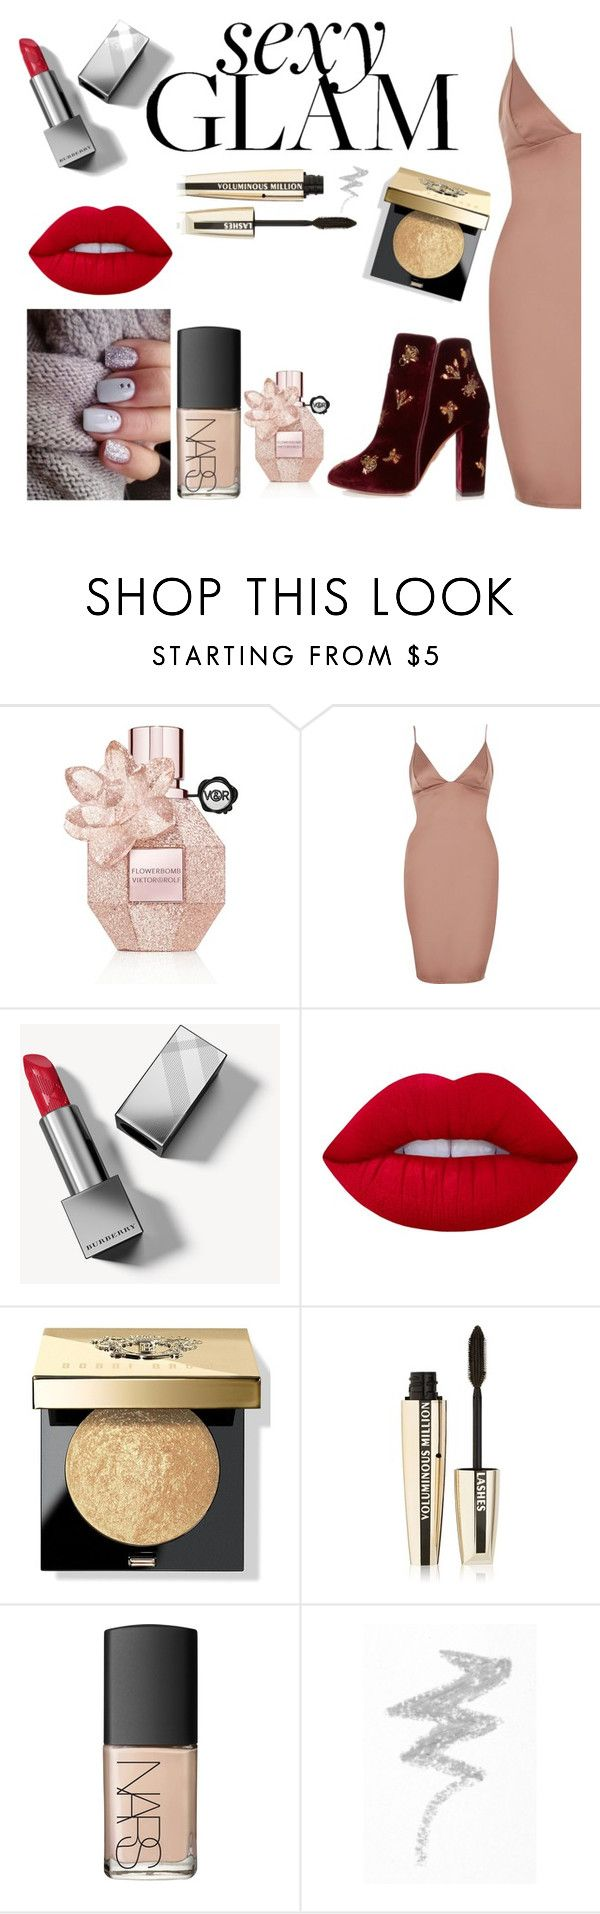 """""""Bold, gold and glitter"""" by emily-barrett97 ❤ liked on Polyvore featuring beauty, Viktor & Rolf, River Island, Burberry, Lime Crime, Bobbi Brown Cosmetics, L'Oréal Paris, NARS Cosmetics, NYX and Aquazzura"""